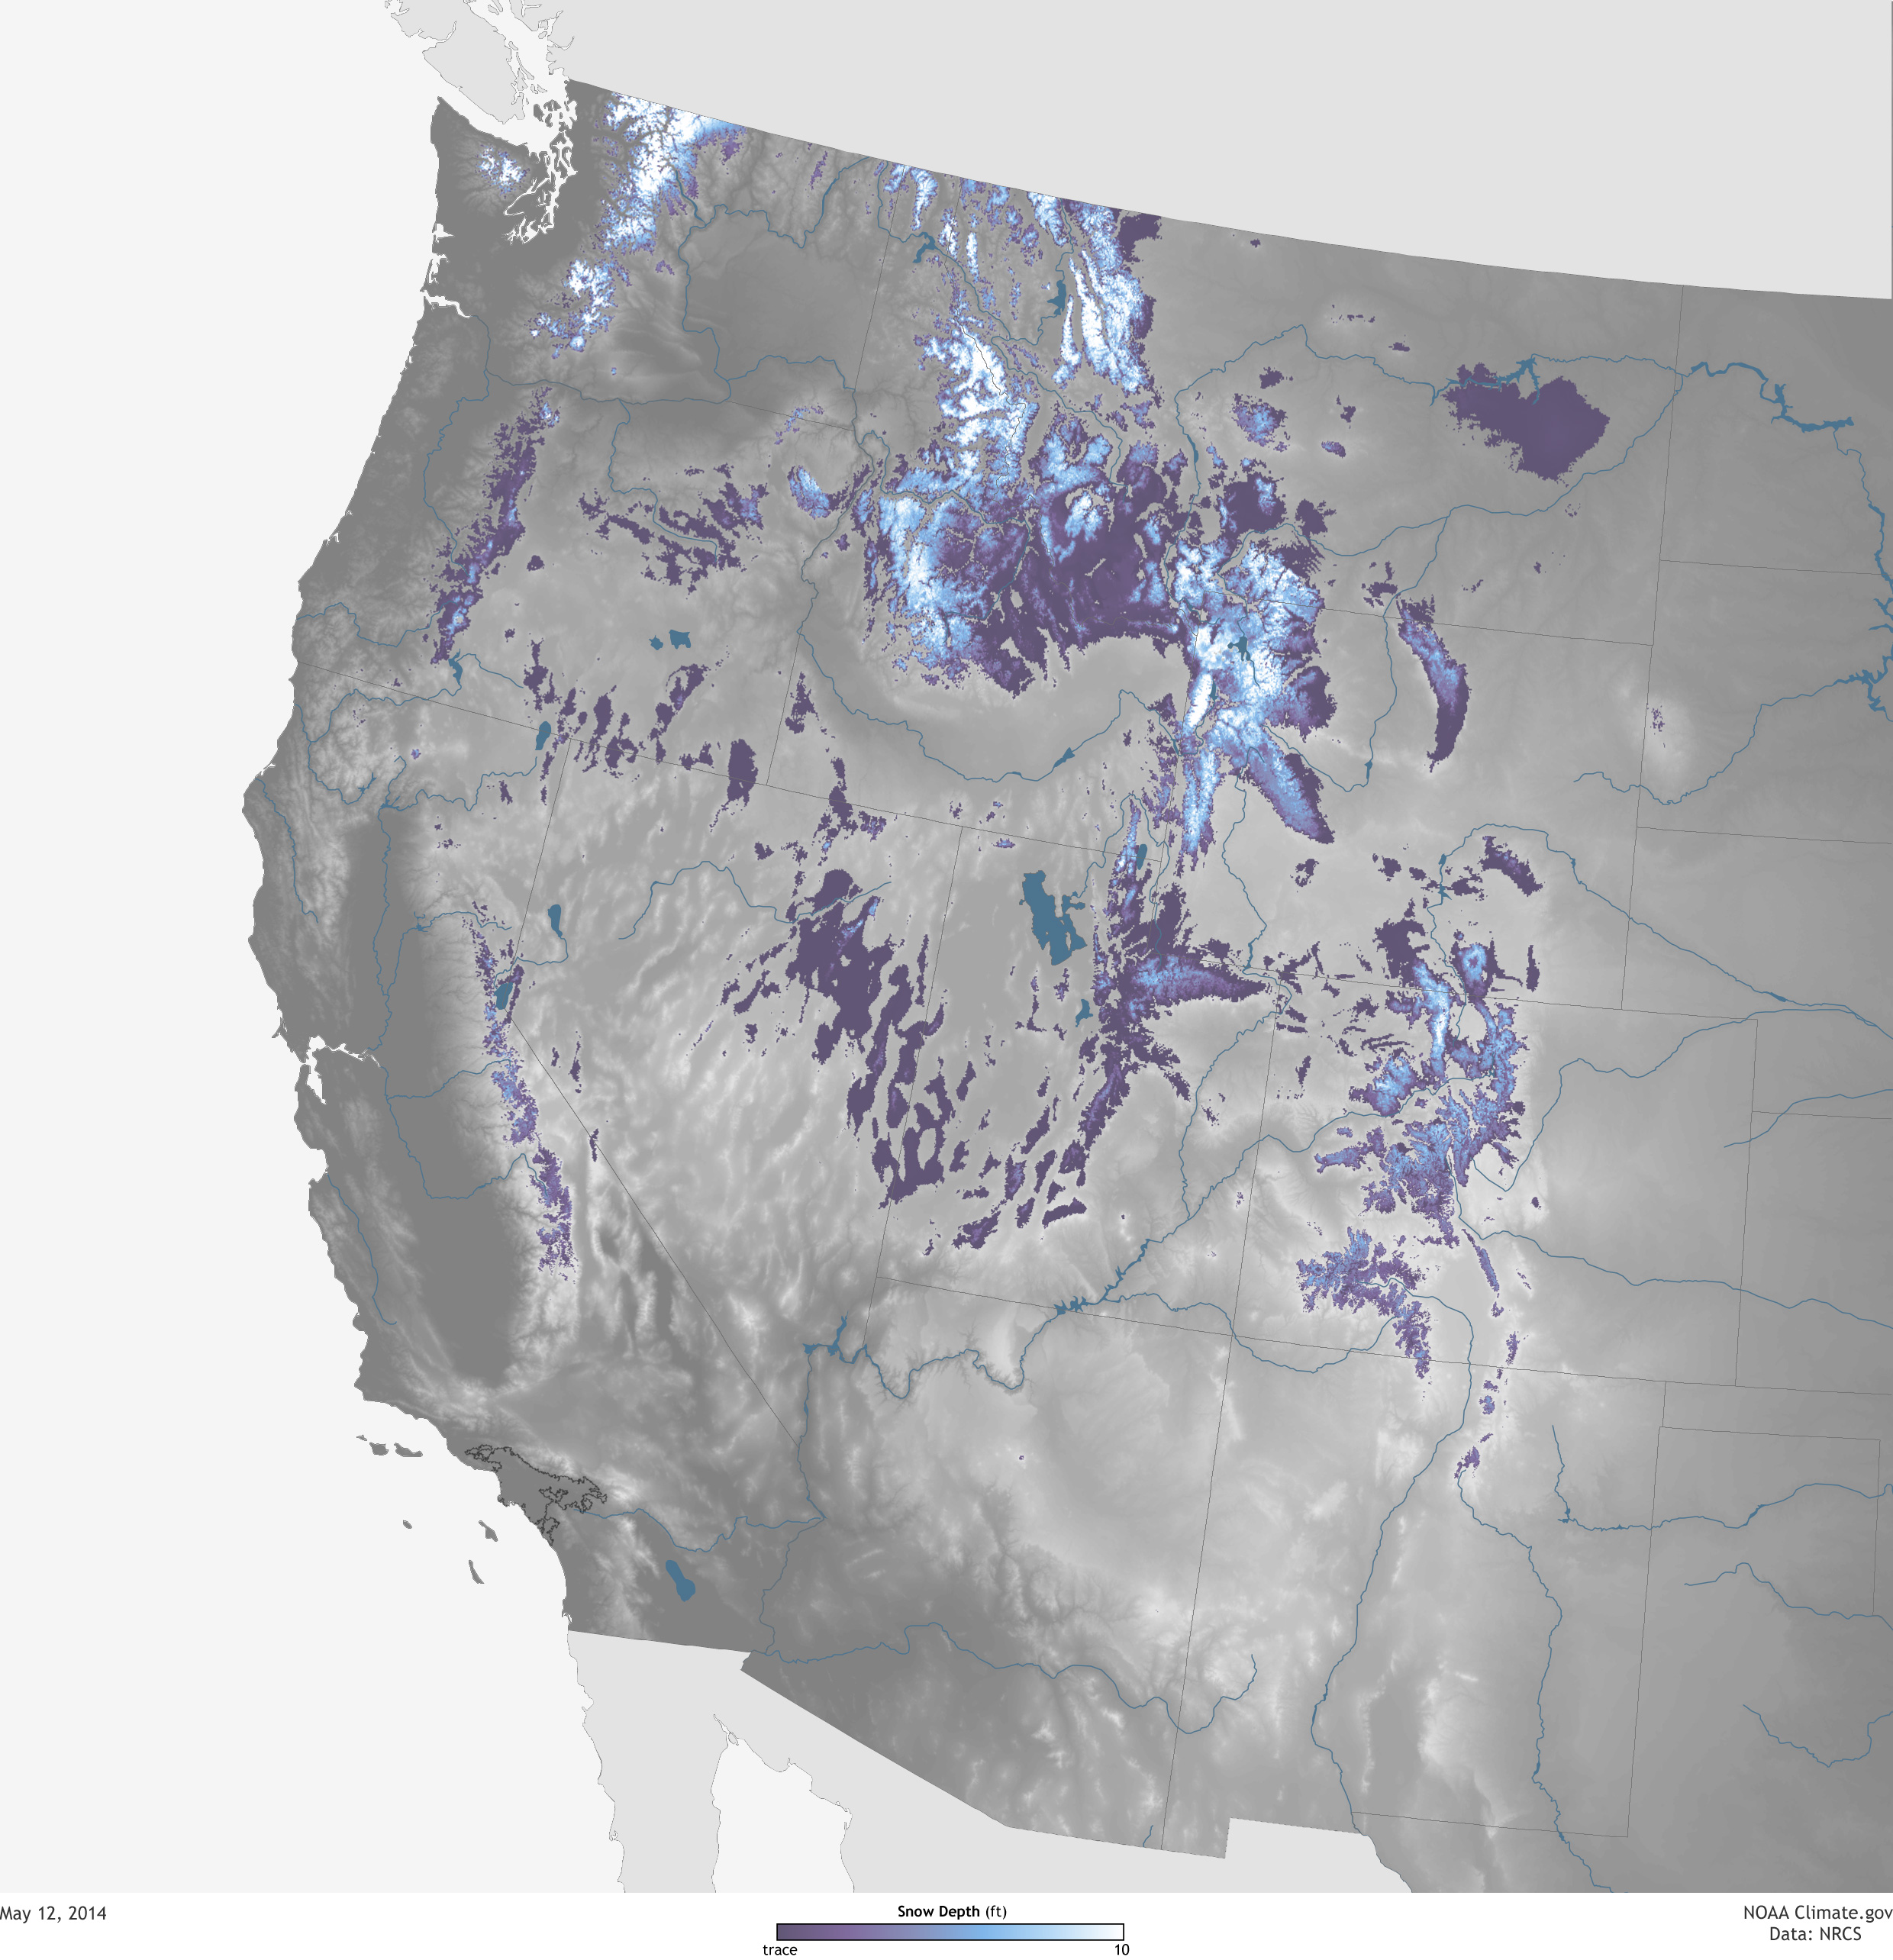 Snowpack Across The US West May NOAA Climategov - Us snowpack map